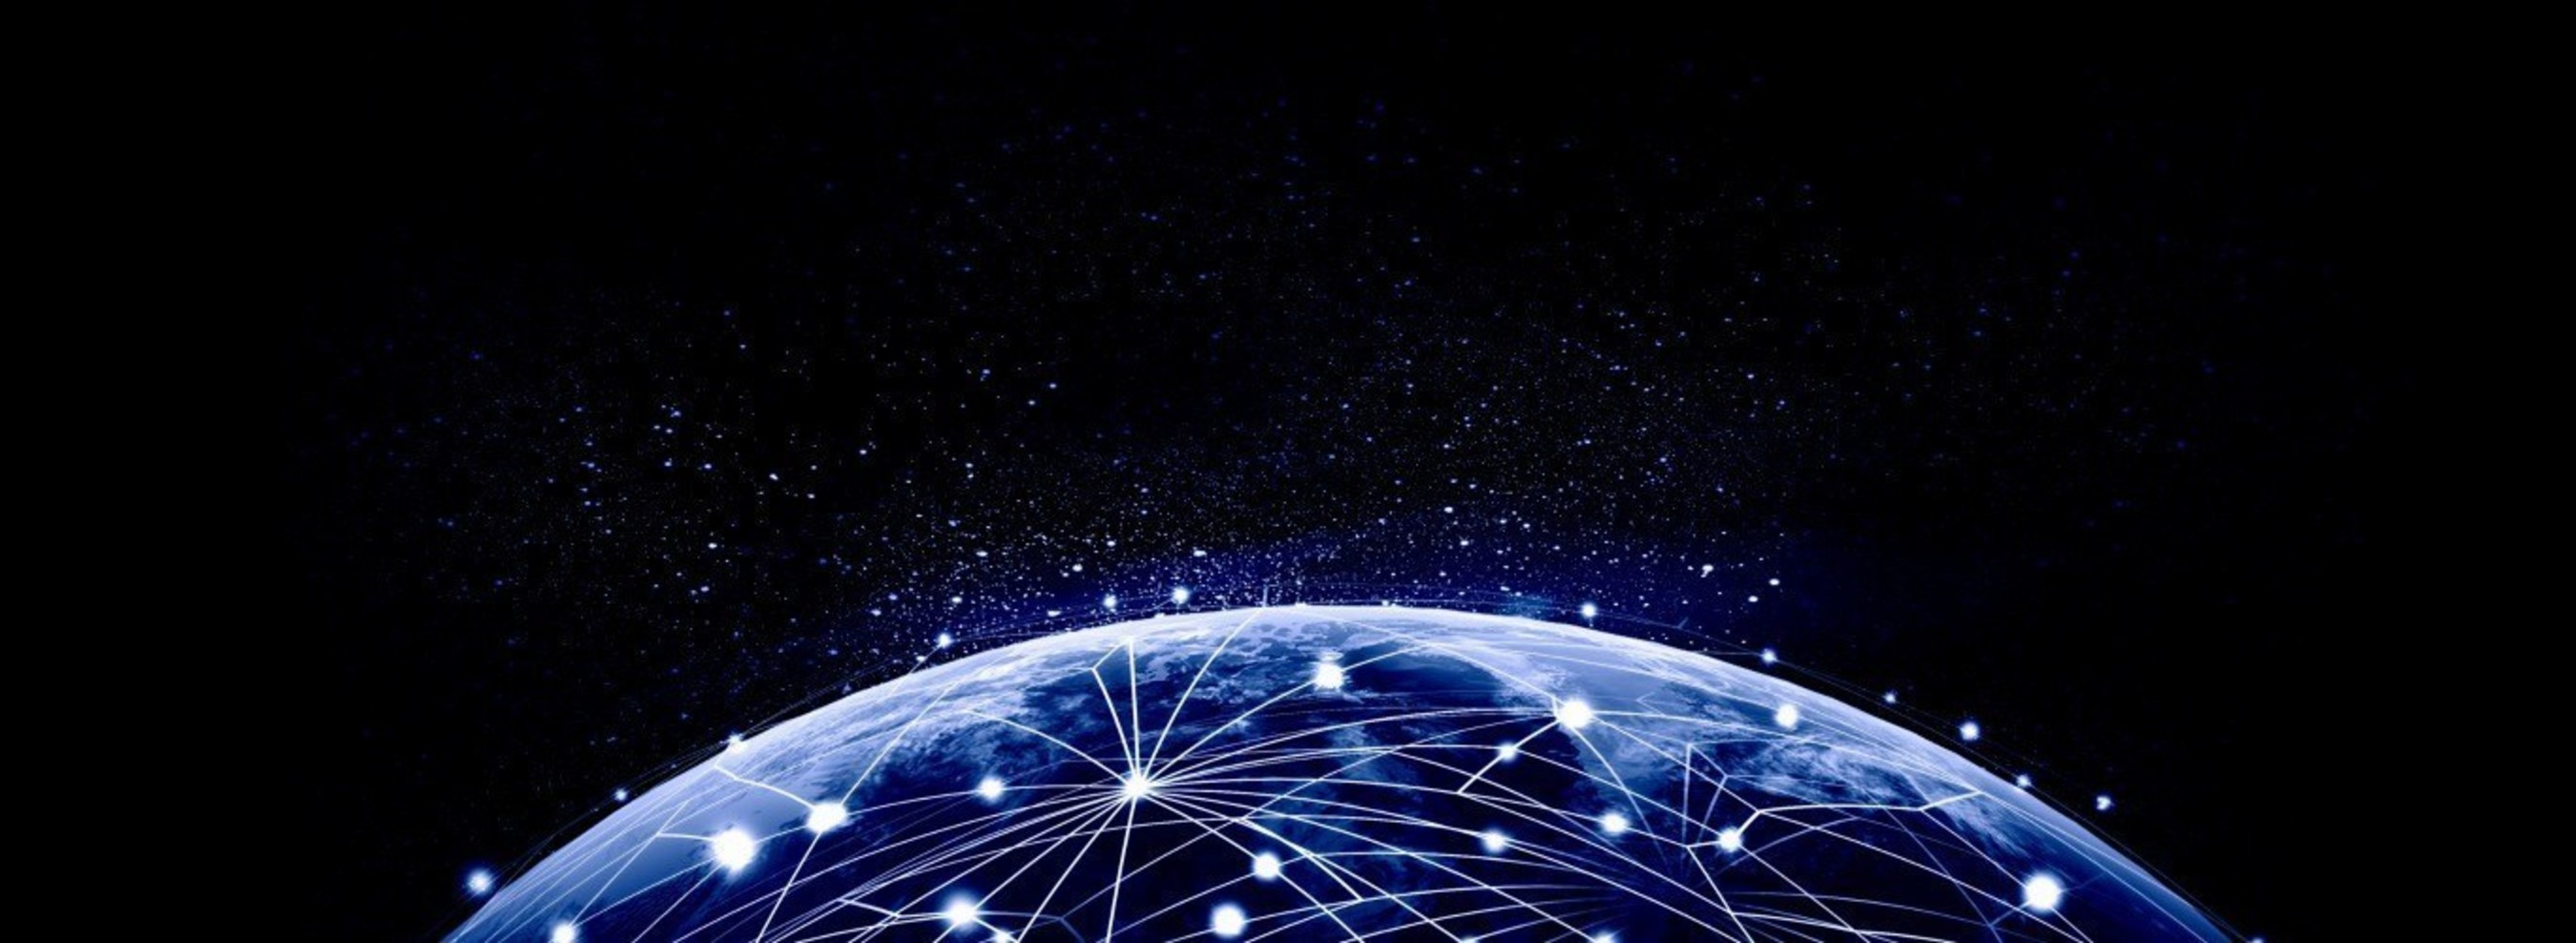 Concur Continues to Invest in Depth and Breadth of Global Offerings to Deliver a Fully Connected T&E Ecosystem